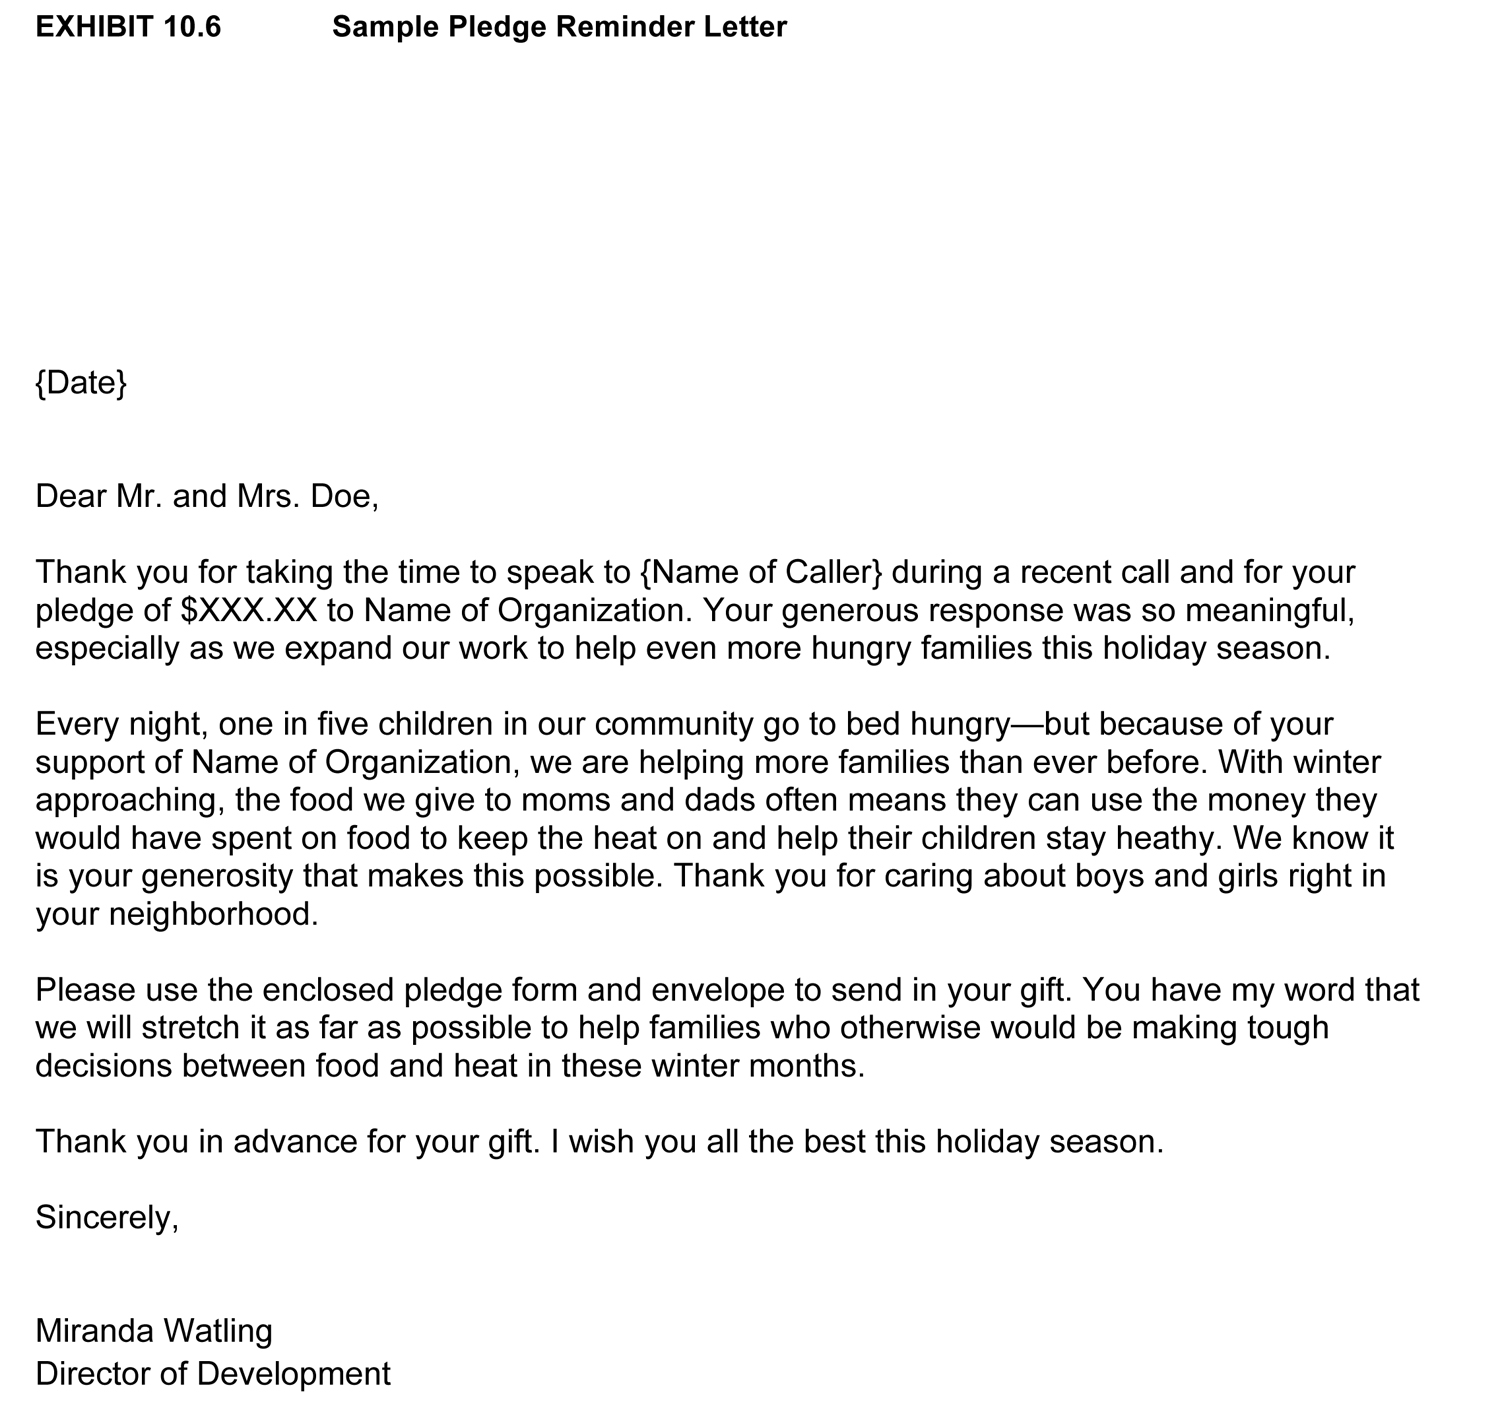 how to write a pledge letter